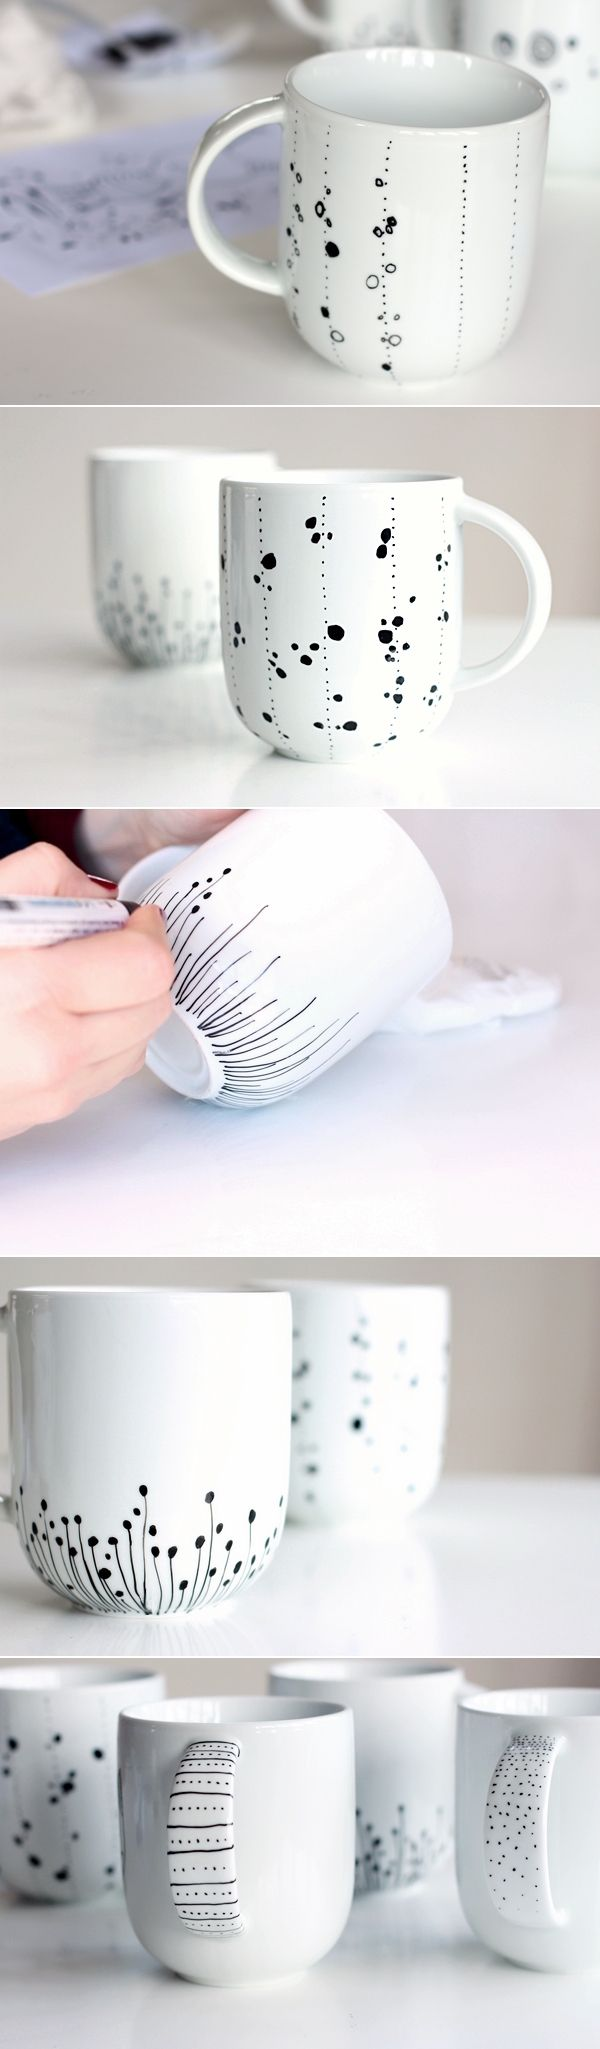 Mug Design Ideas How To Decorate A Coffee Mug Using A Porcelain Marker